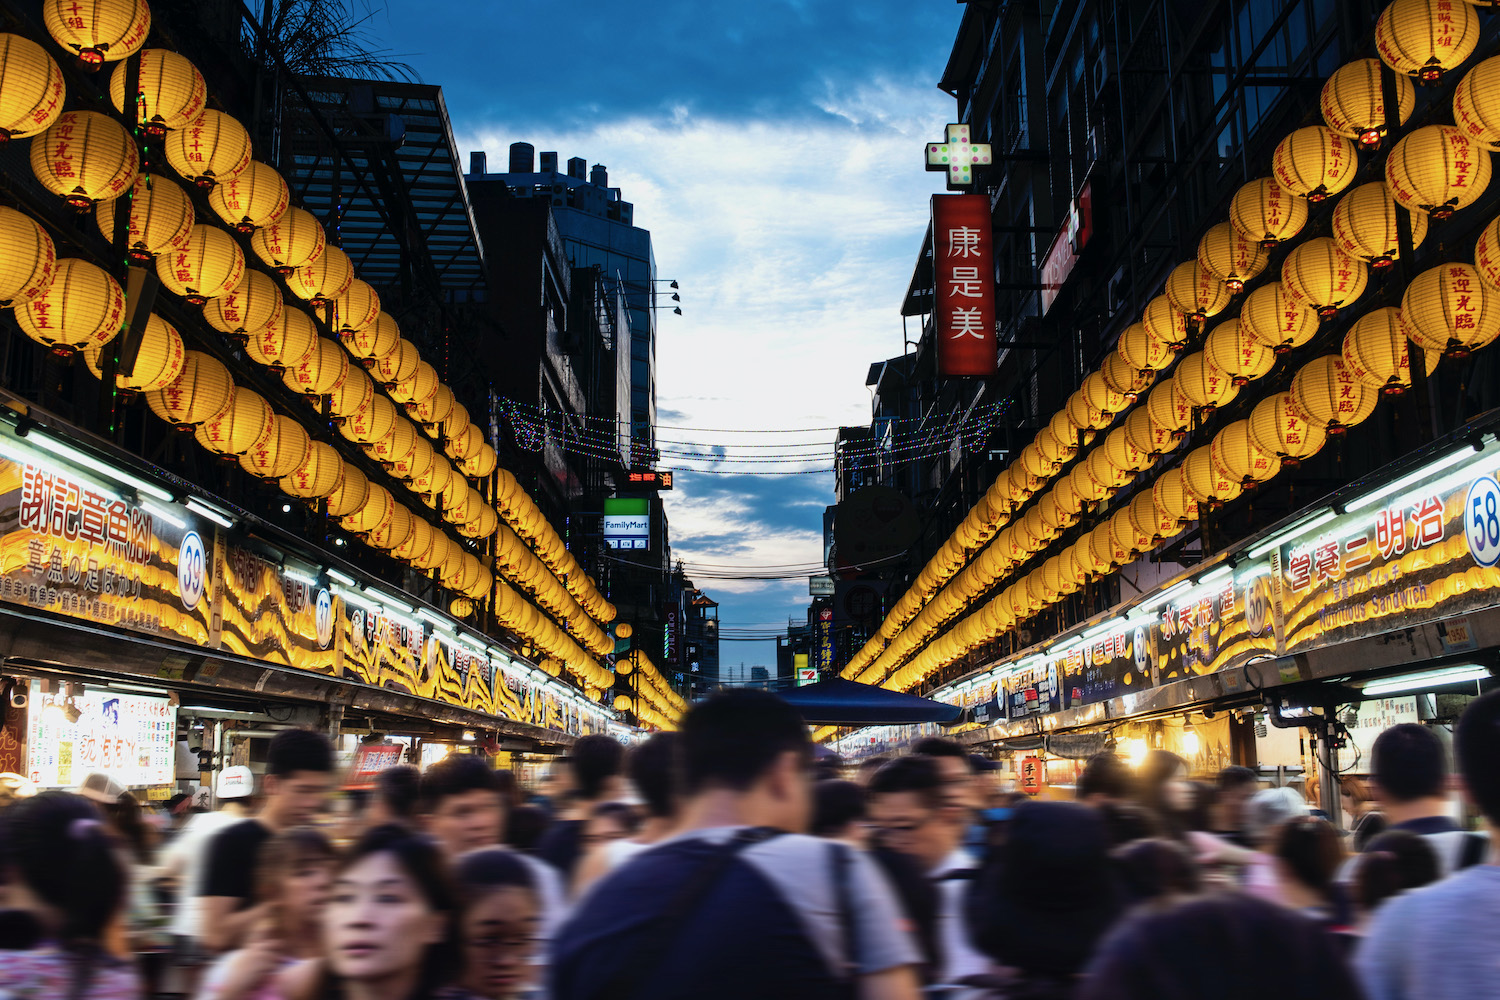 When Will Taiwan Open to Tourists?